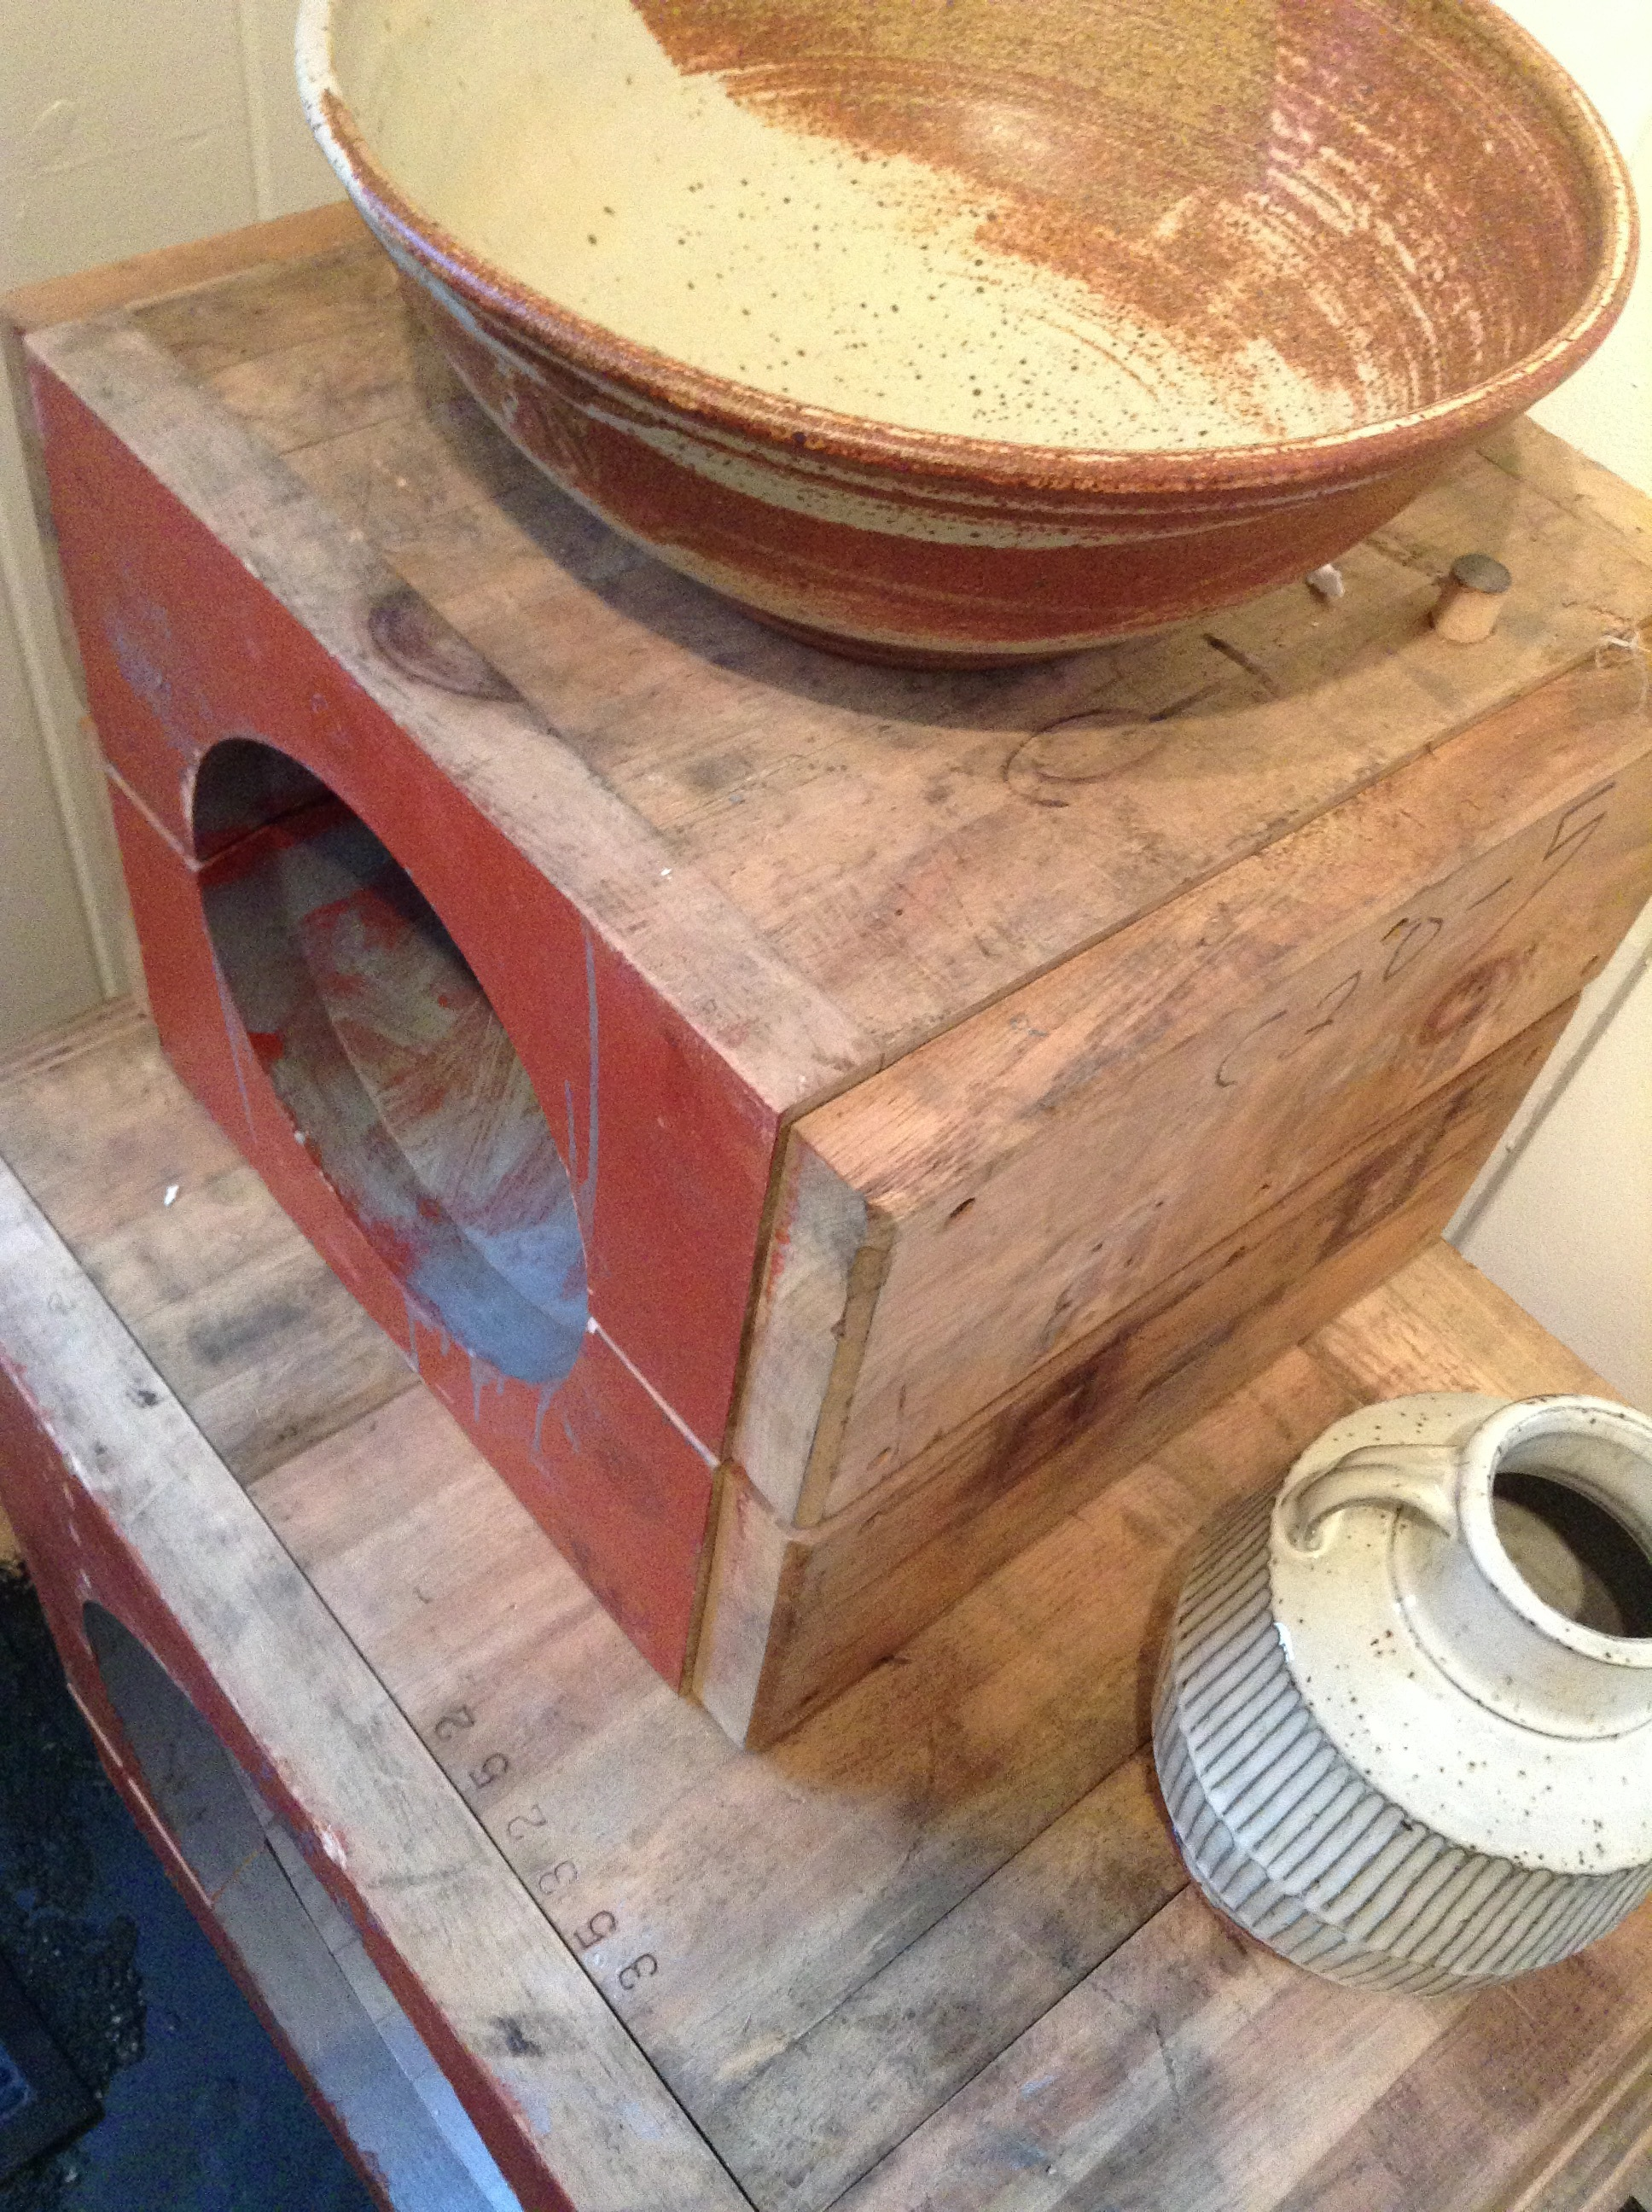 Antique Foundry Mold Boxes & Ceramic work by  M. Sweeney